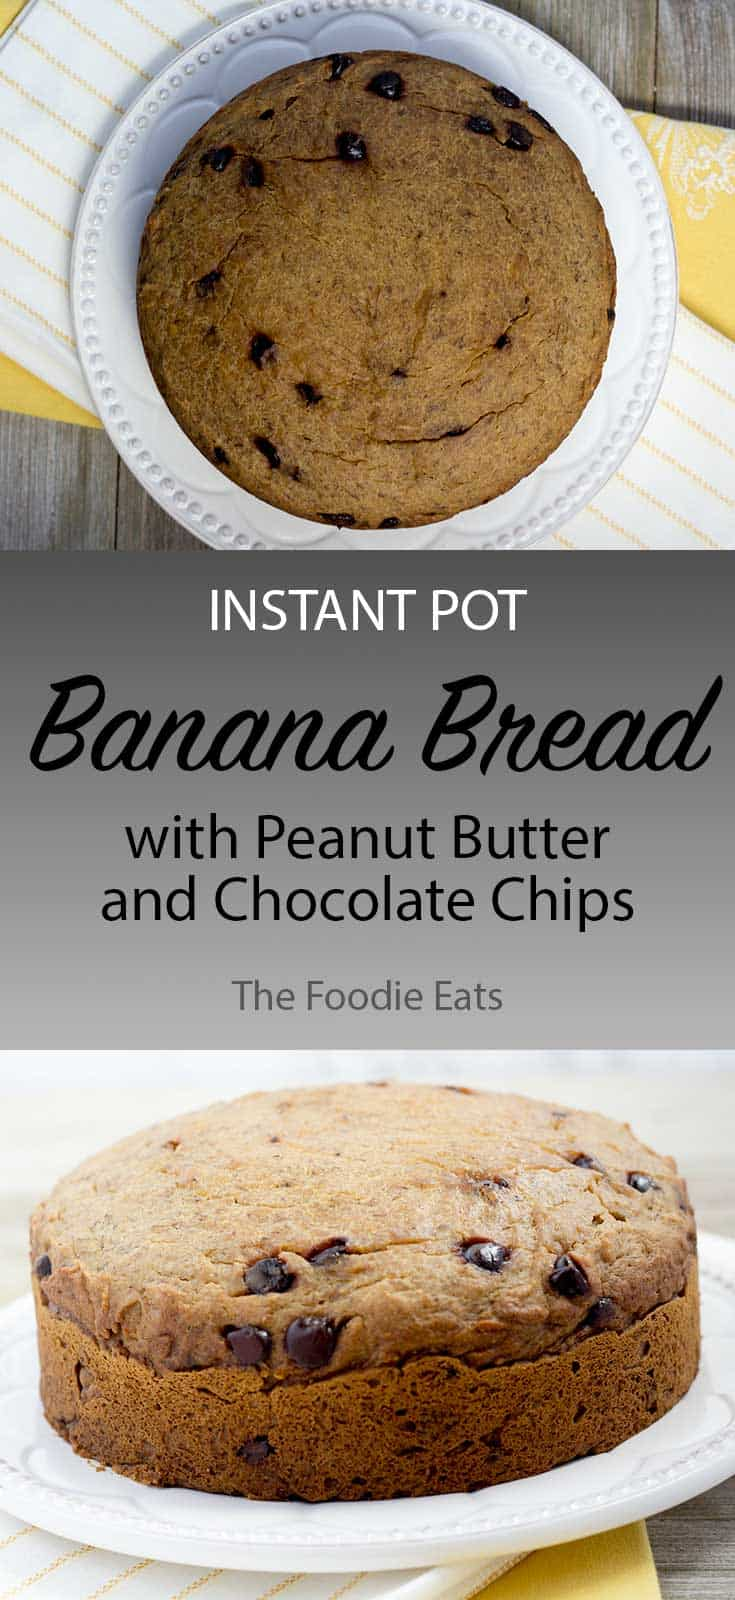 Instant Pot Banana Bread | The Foodie Eats